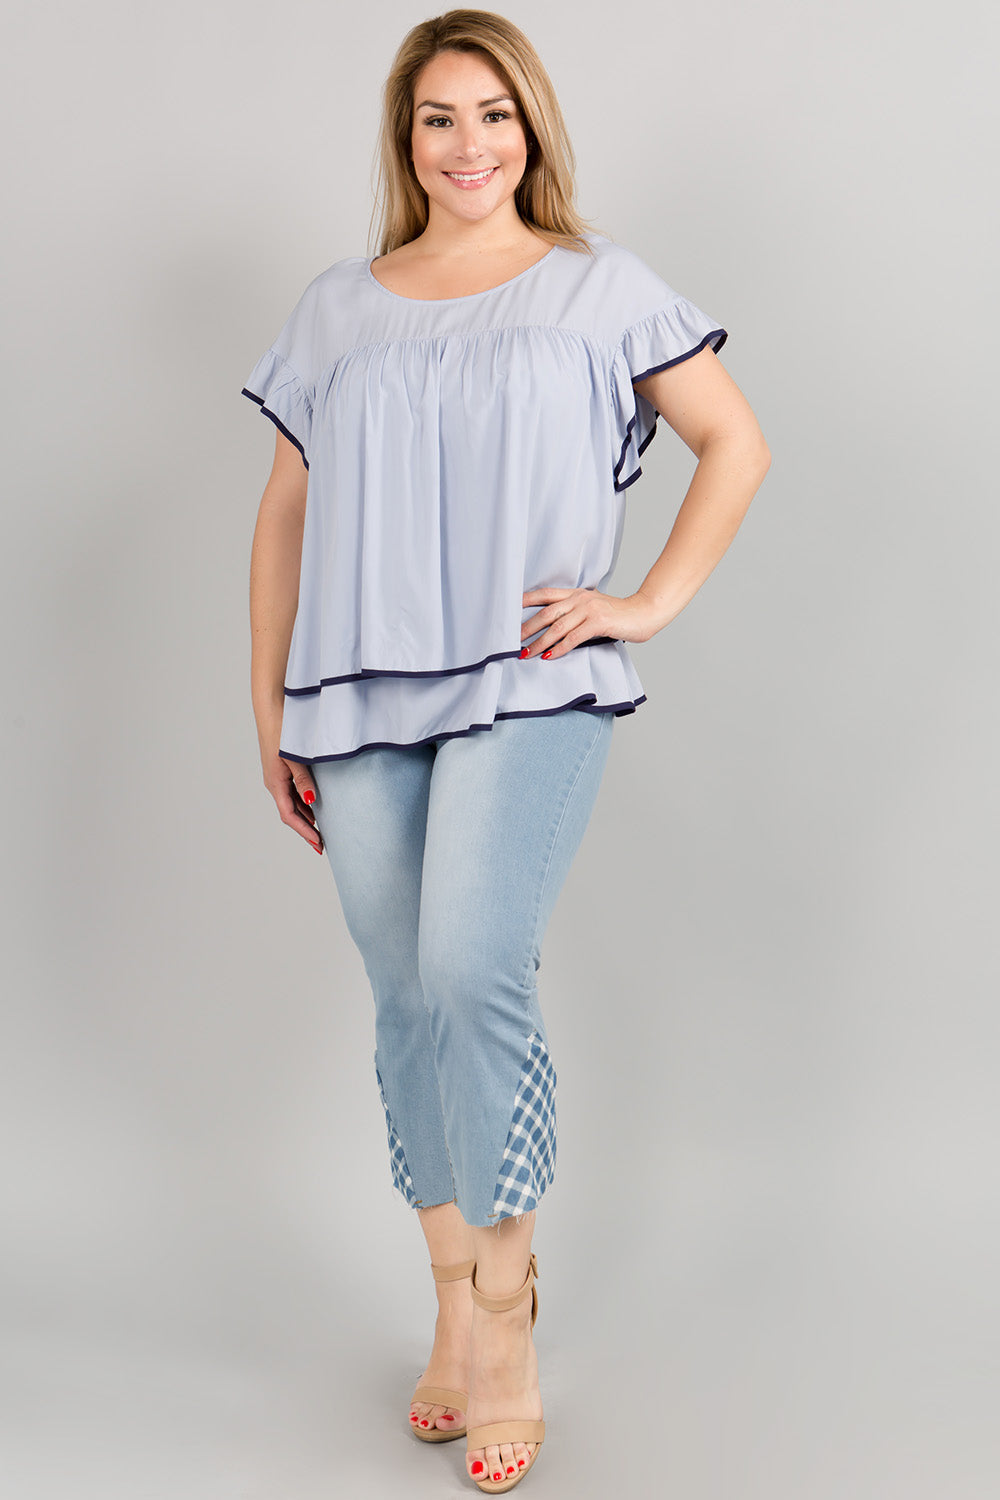 WT2105 Ruffle Sleeve Top